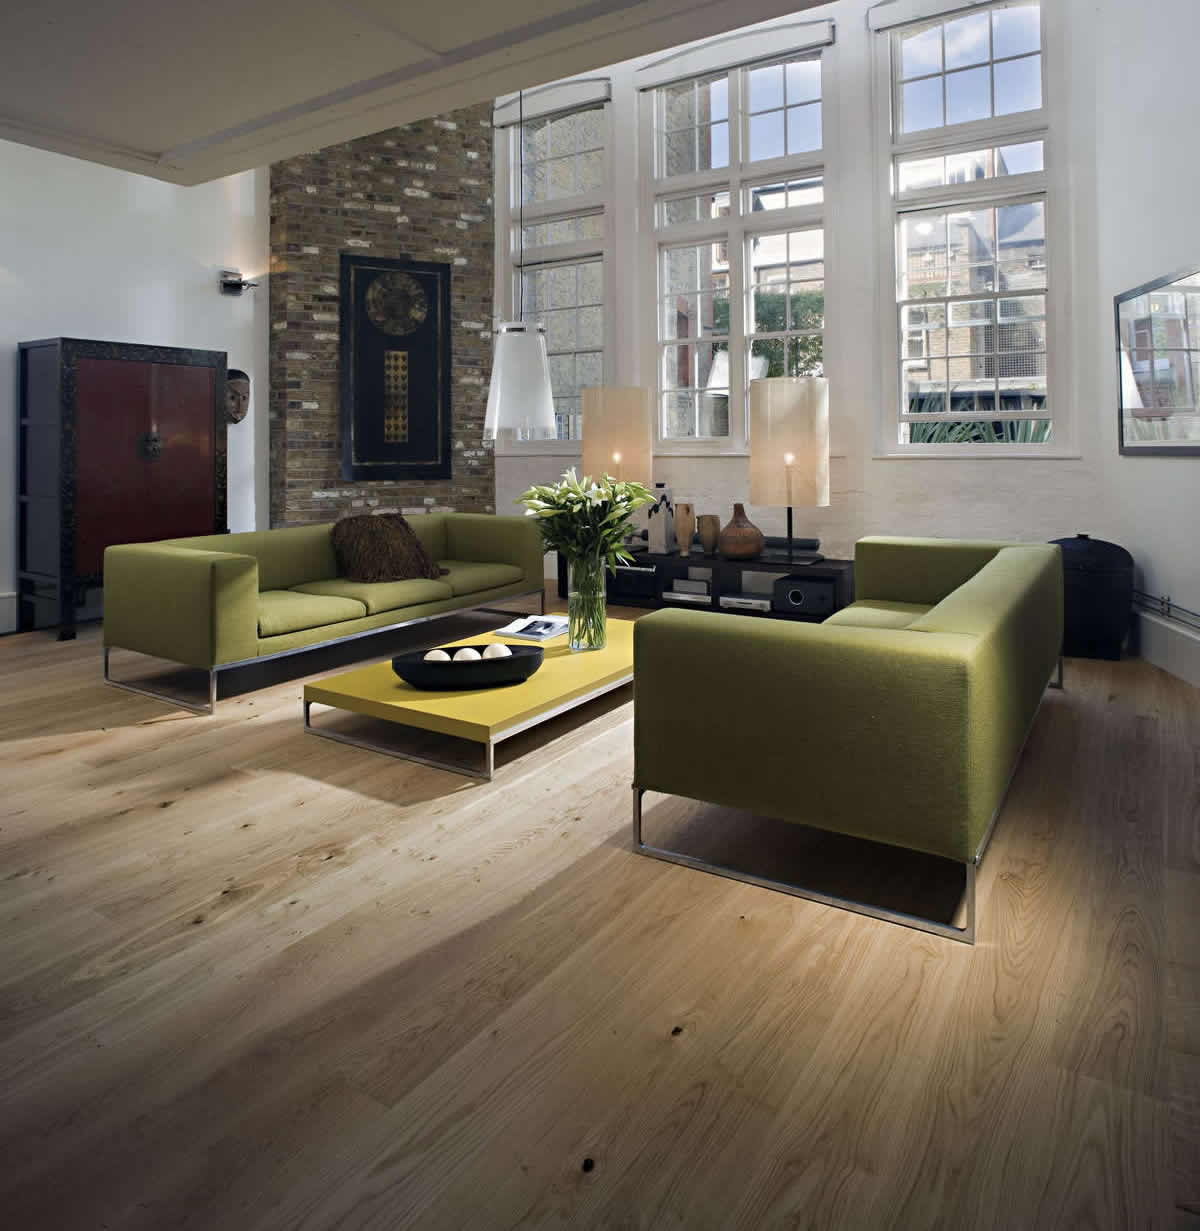 Kahrs Oak Hampshire Engineered Wood Flooring - Oak Hampshire Engineered Wood Flooring